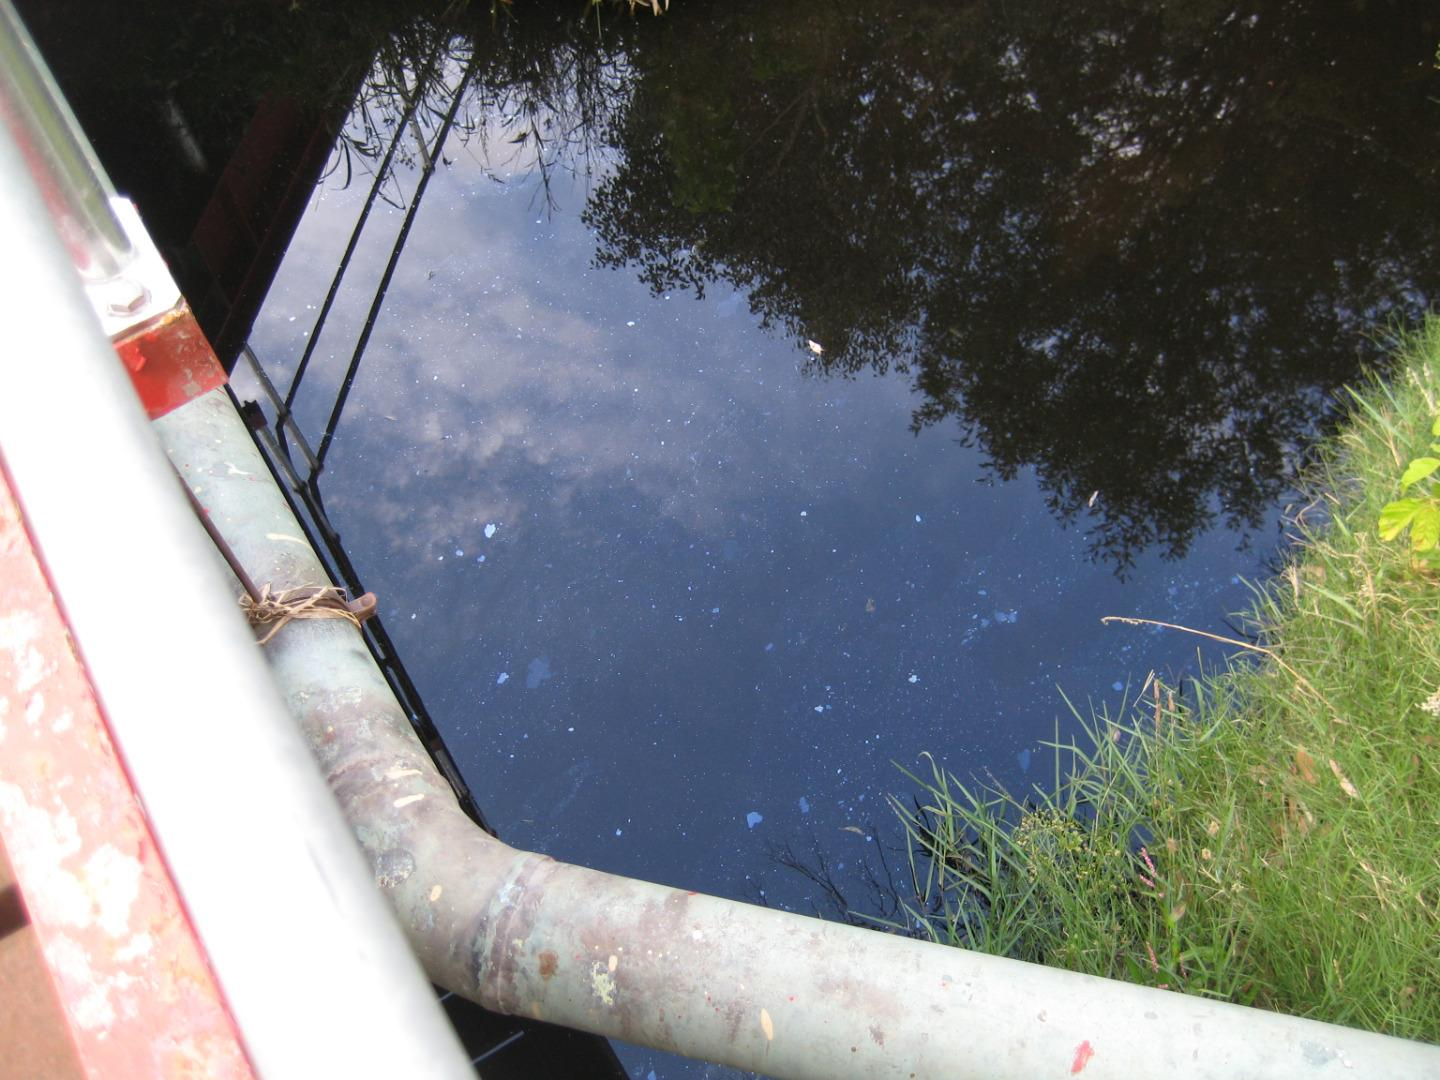 many patches of oil (?) on the surface  -near the bridge